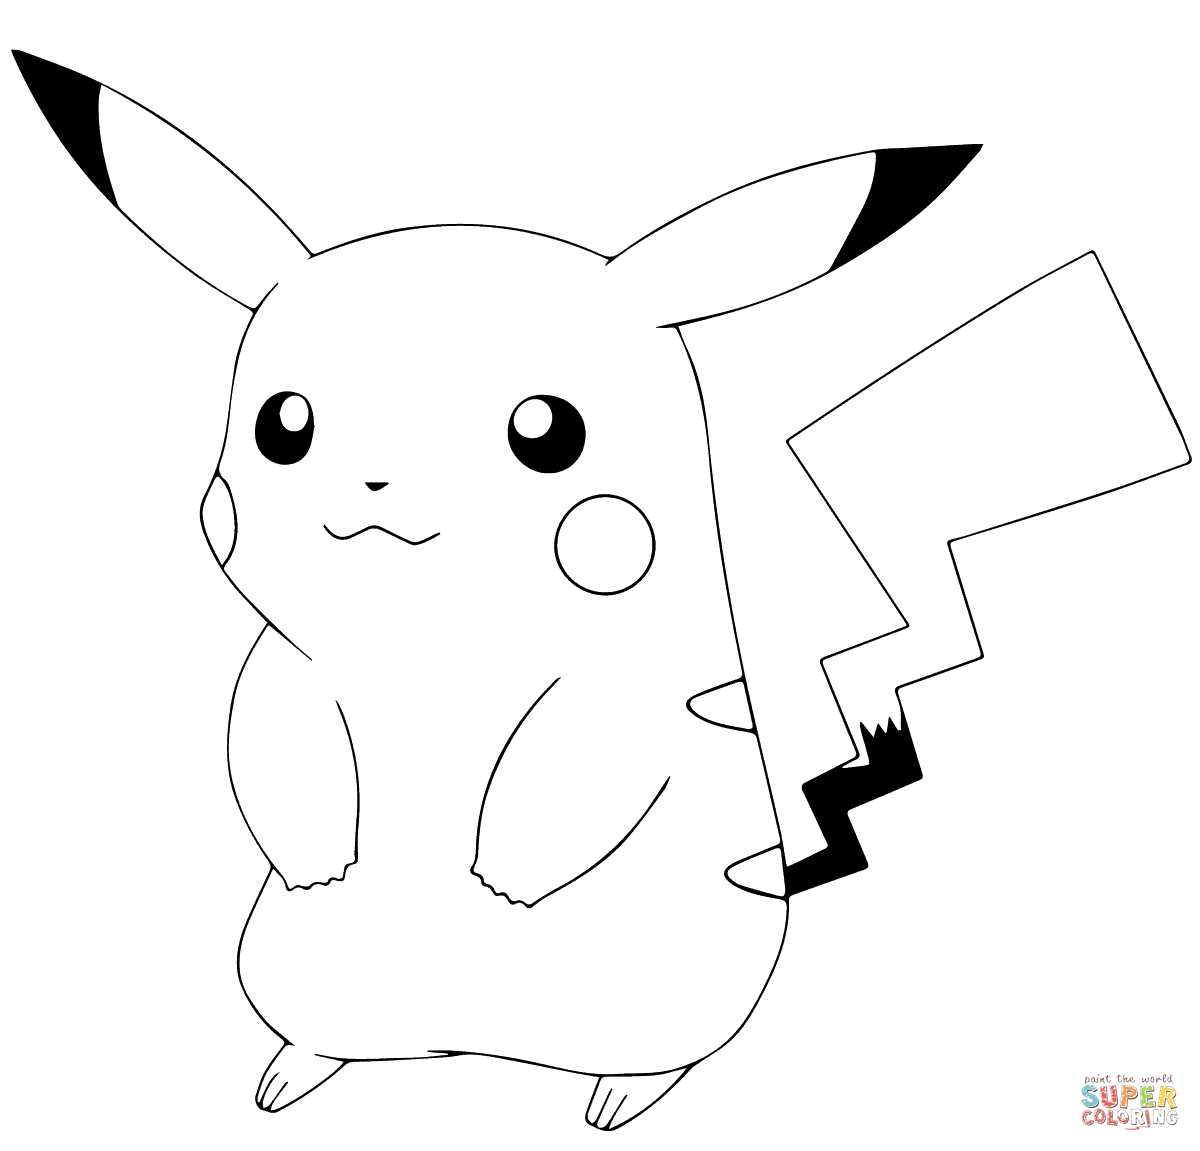 Pokemon Go Pikachu Coloring Page From Pokemon Go Category Select From 29153 Printable Crafts Of In 2020 Pikachu Coloring Page Pokemon Coloring Pokemon Coloring Pages